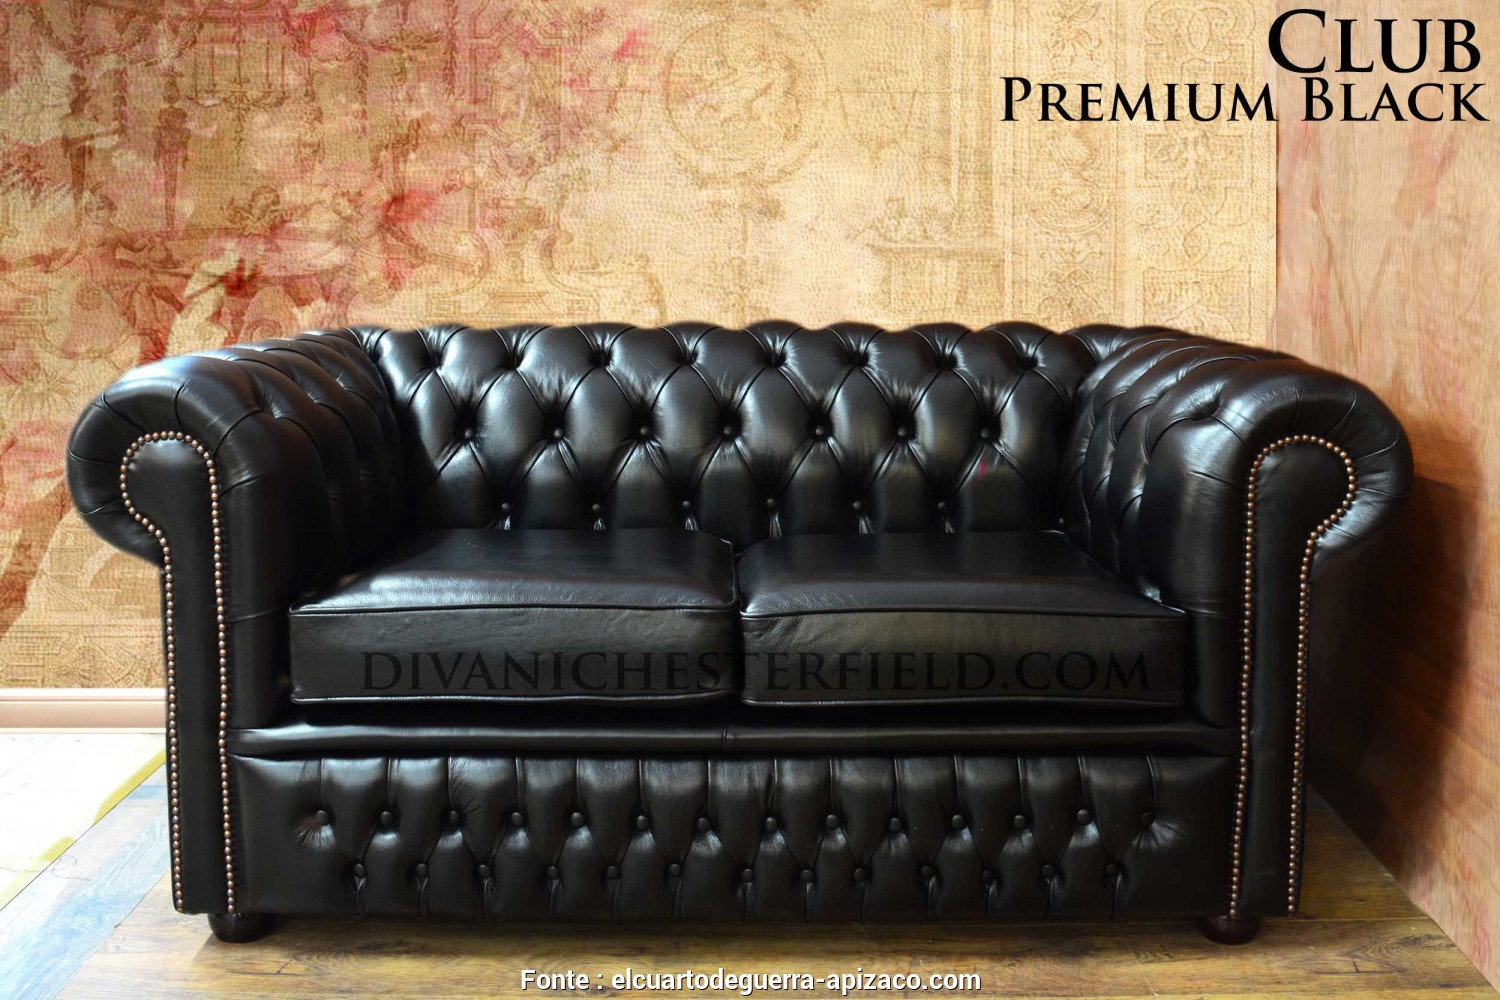 Divano Chesterfield Frau, Favoloso Divano Chesterfield Club Nuovo Originale Inglese